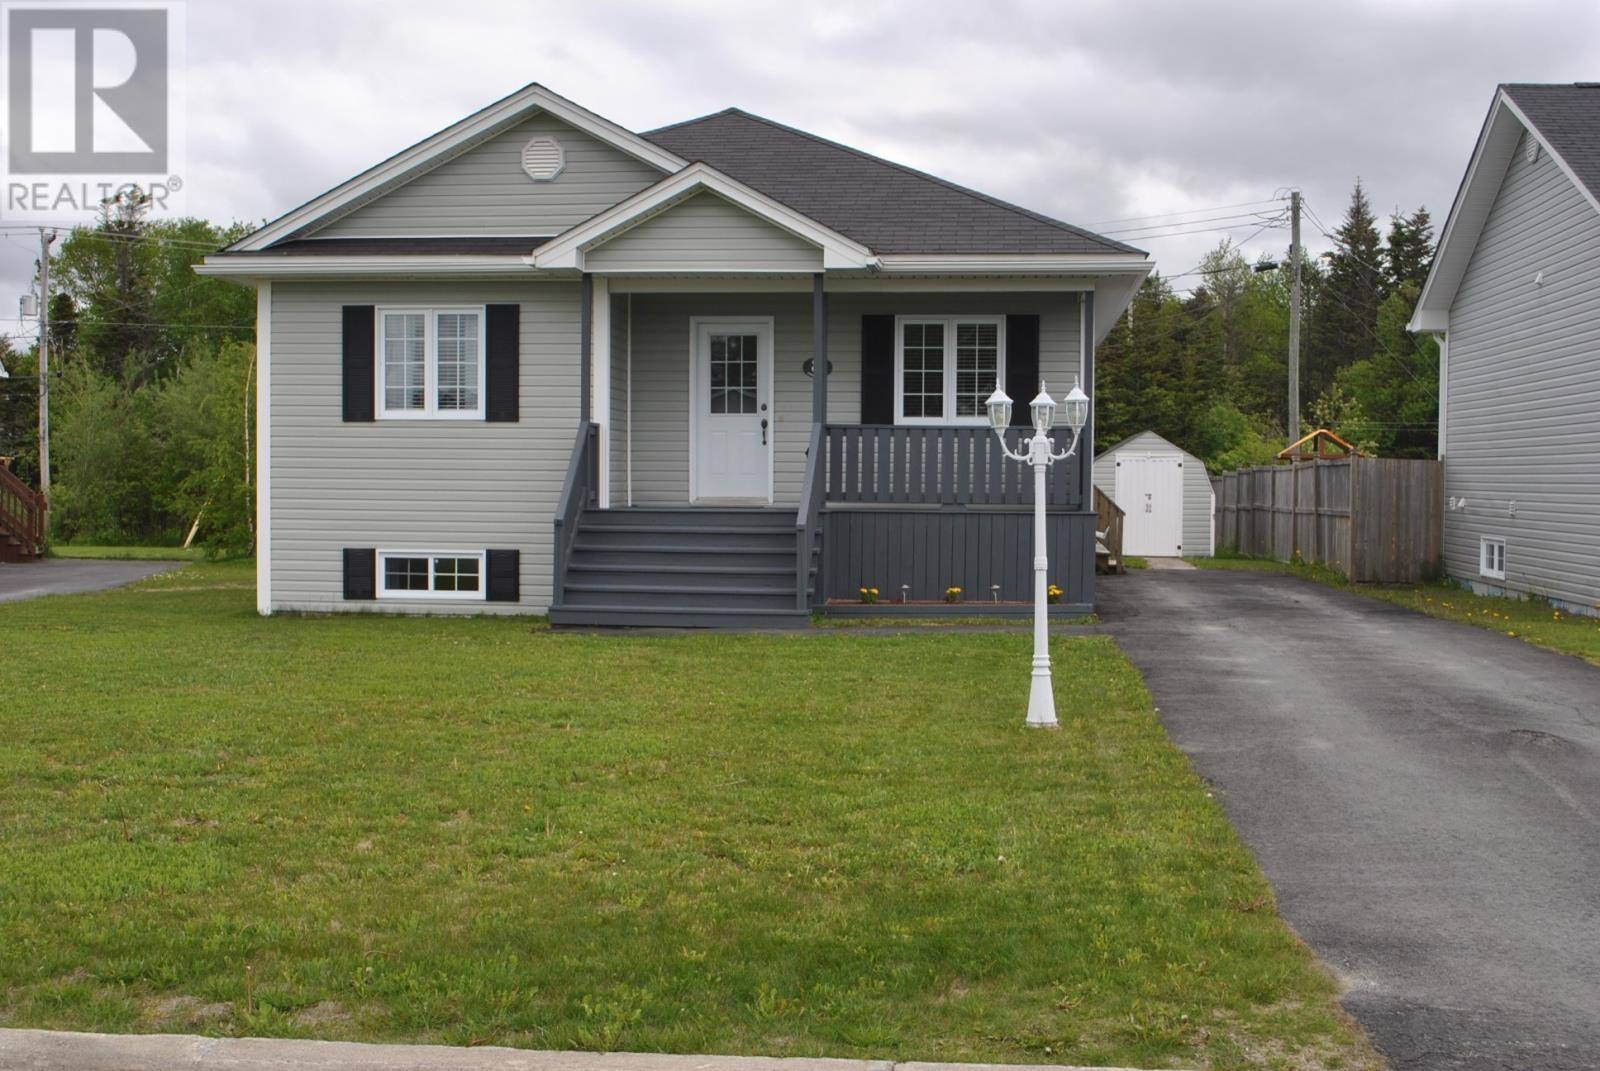 House for sale at 8 Cayley Pl Gander Newfoundland - MLS: 1198341